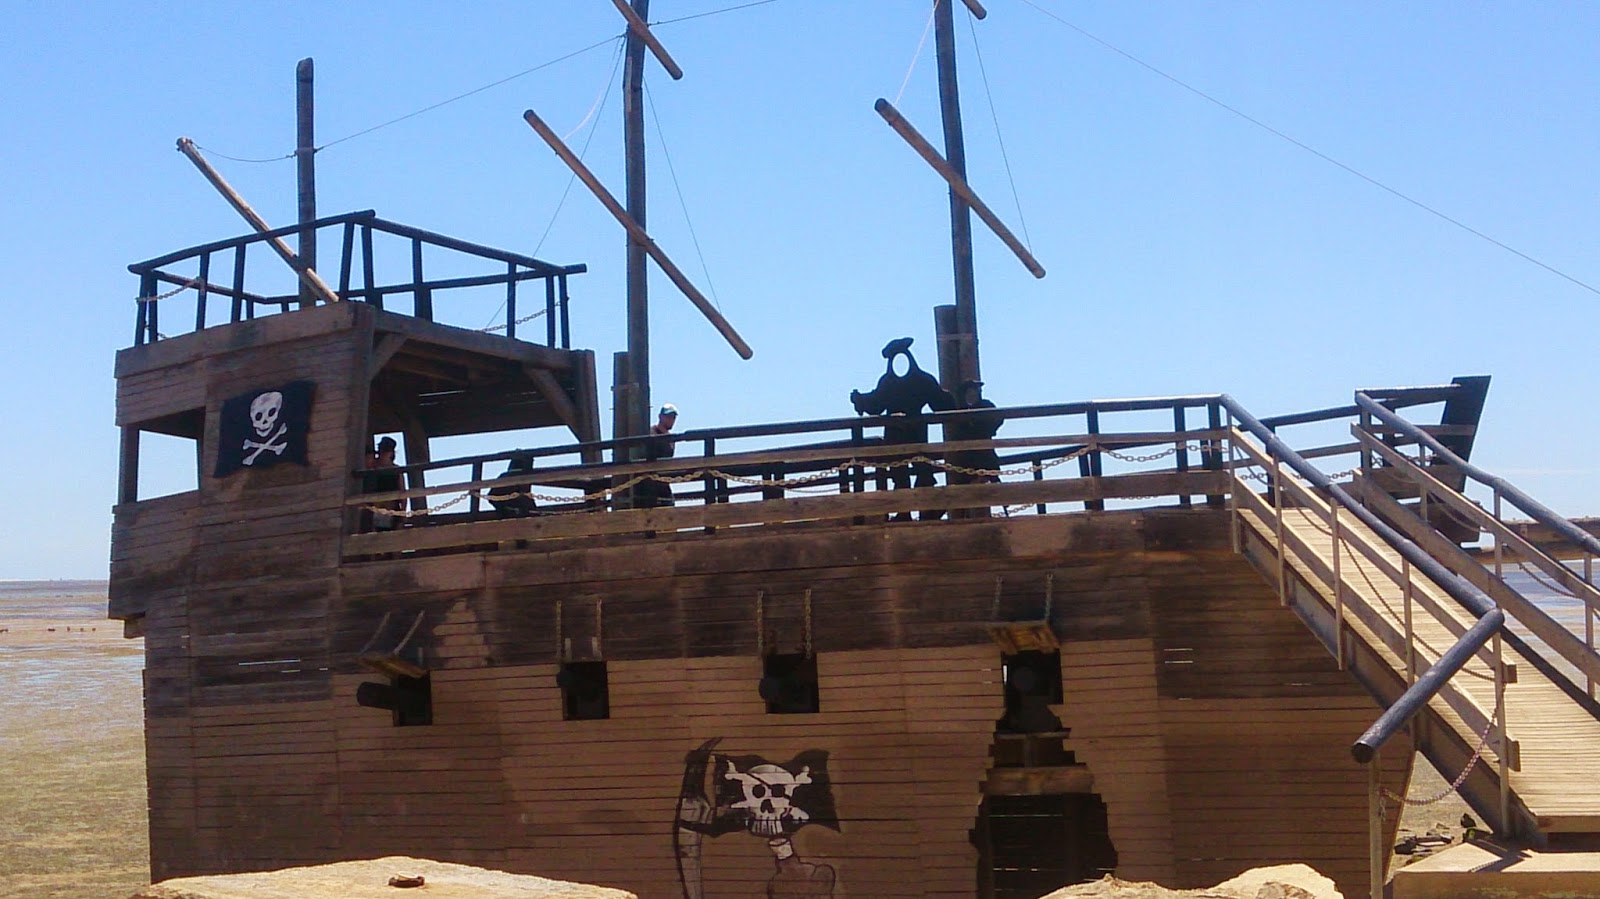 St Kilda Playground Pirate Ship